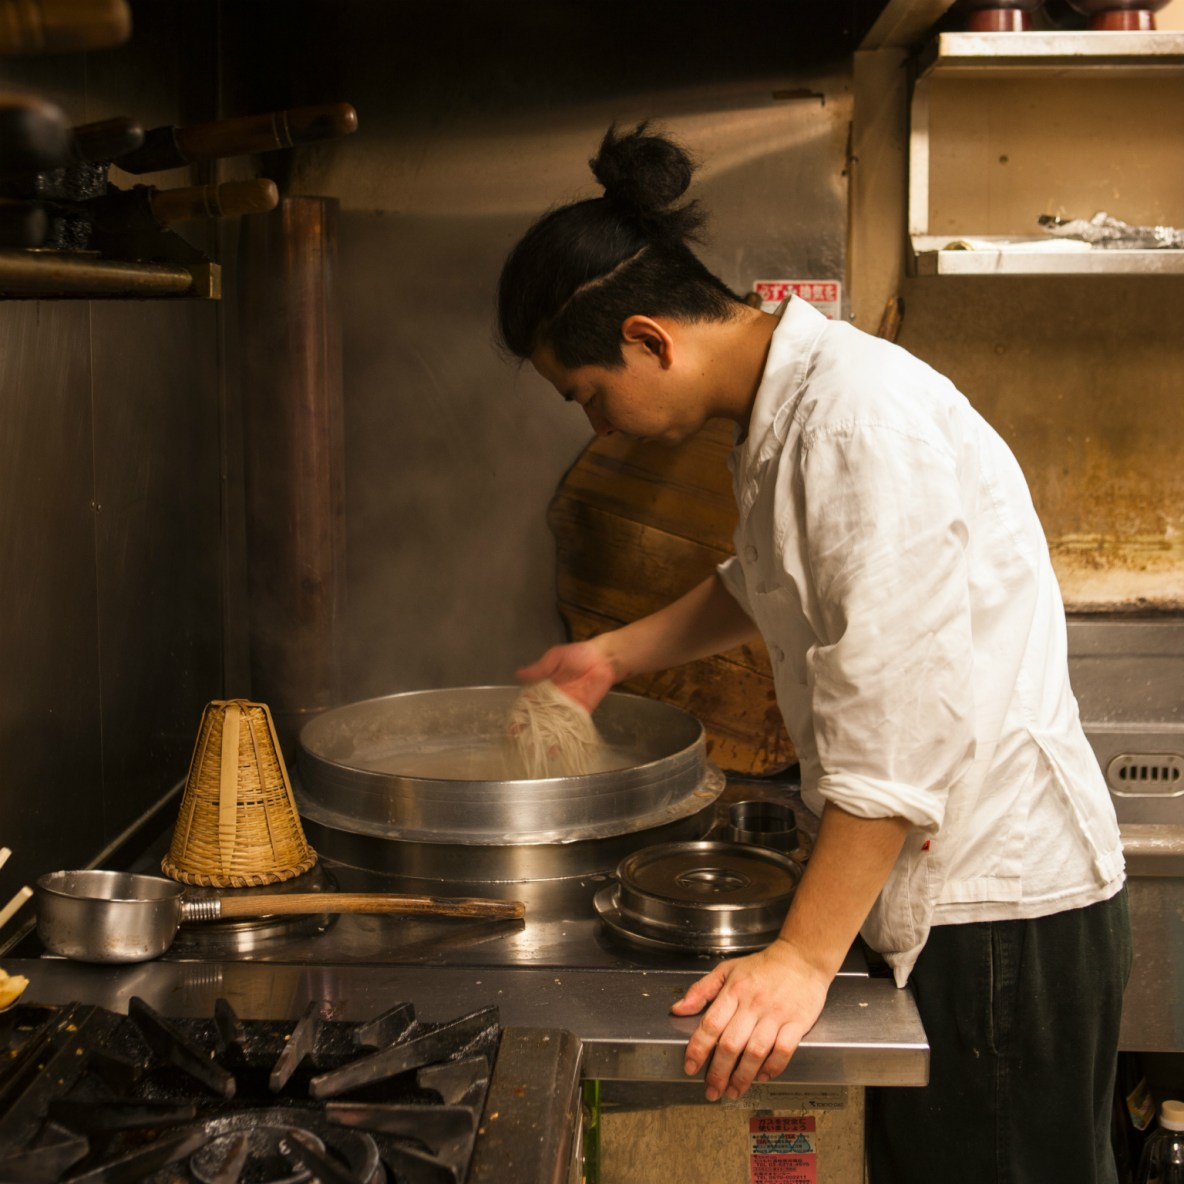 Serene and modern setting in which to savour expertly made soba noodles